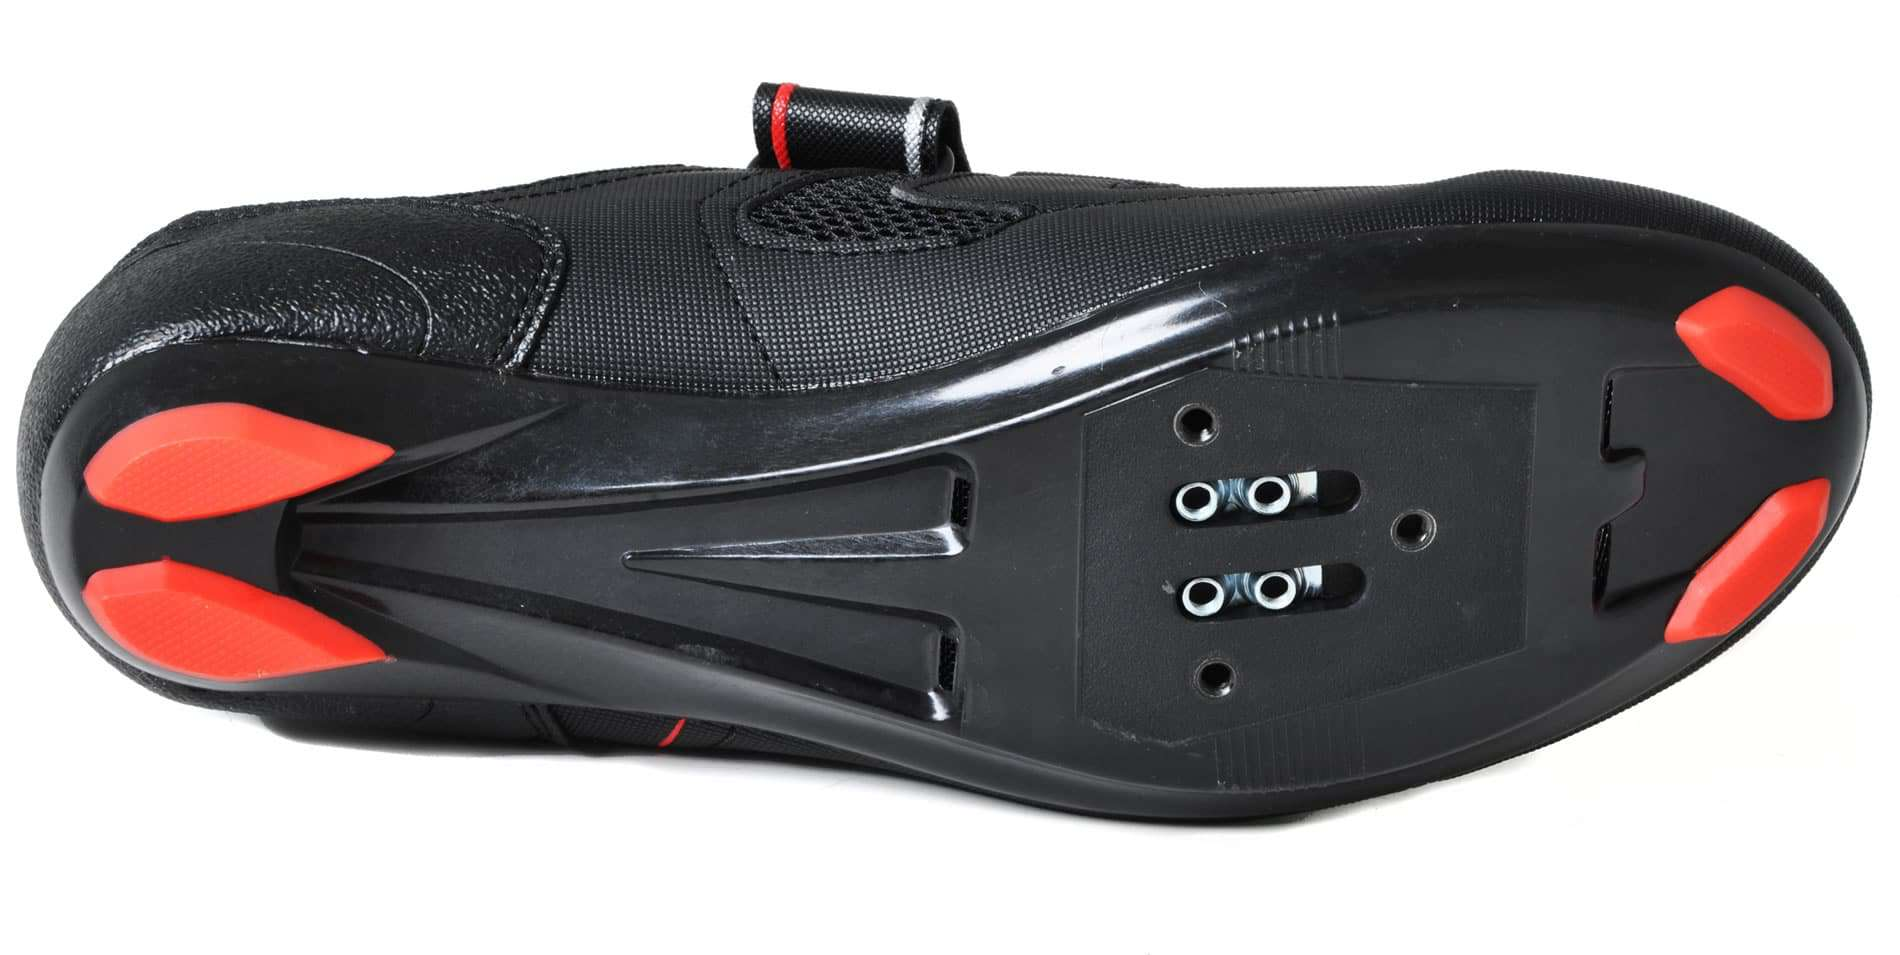 15 Best Cycling Shoes and Pedals of 2018 - Buying Guide and Reviews 58